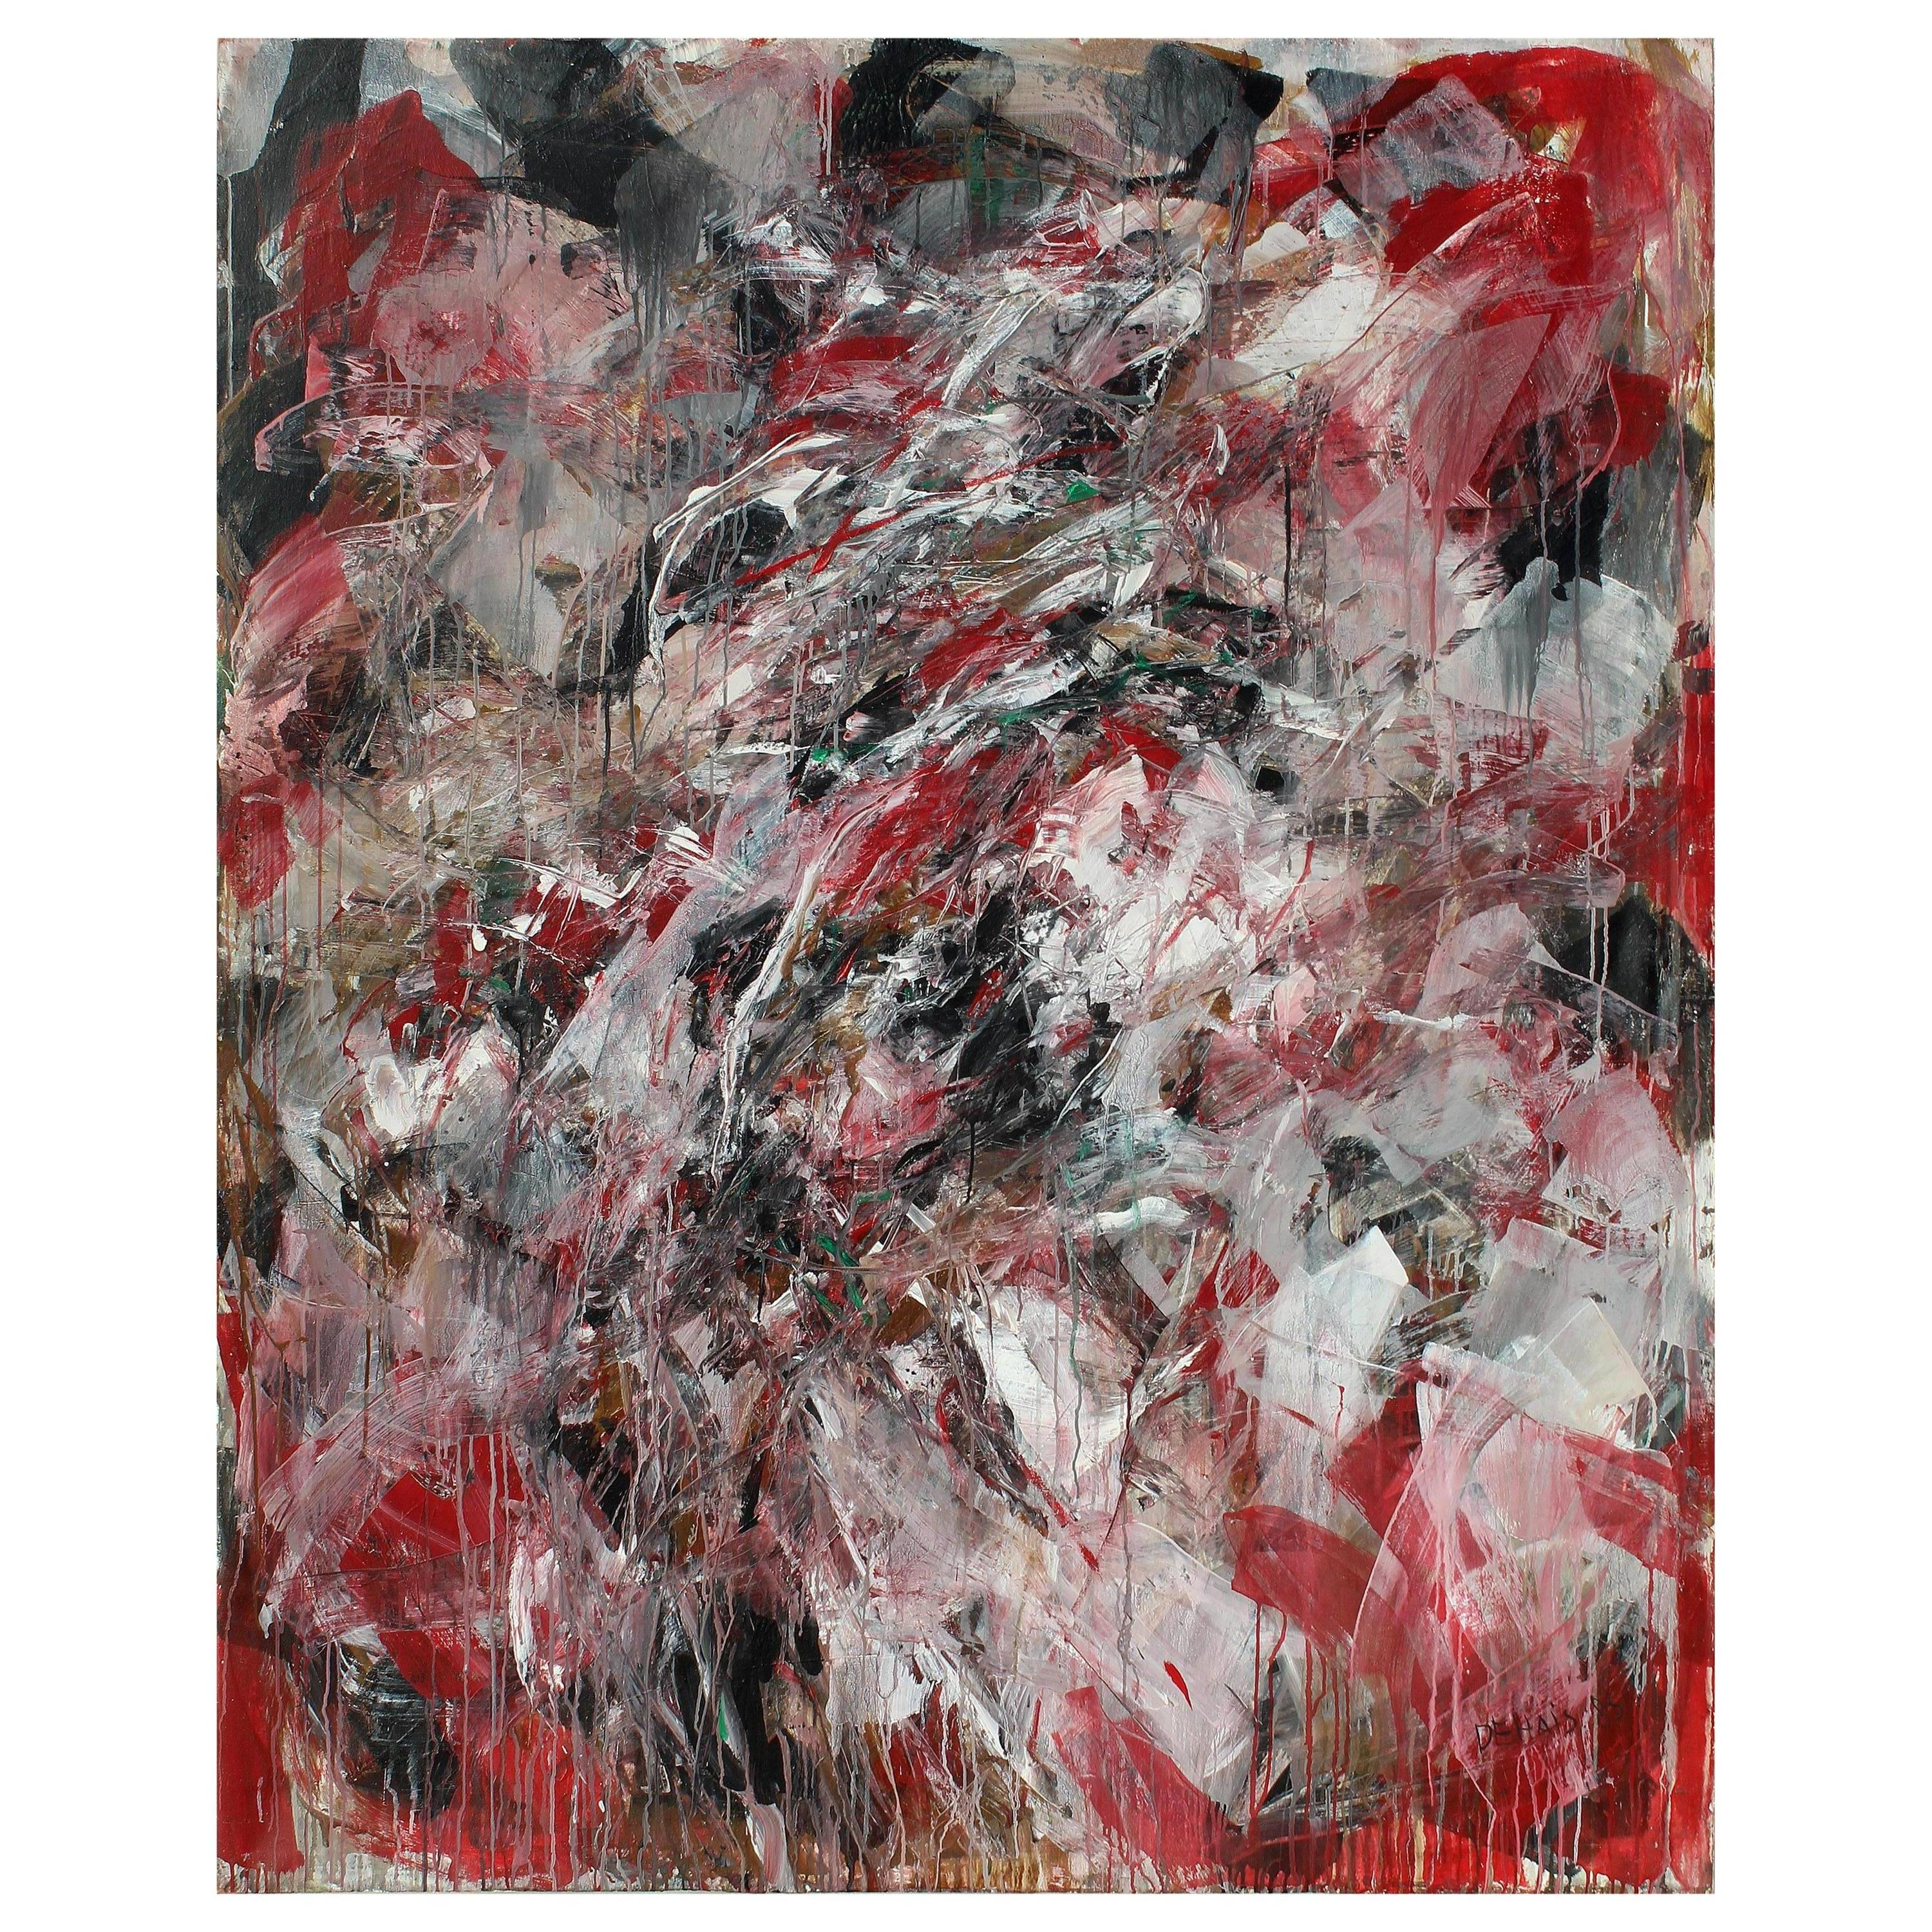 Monumental Abstract Oil Painting on Canvas by Dehais,  1985